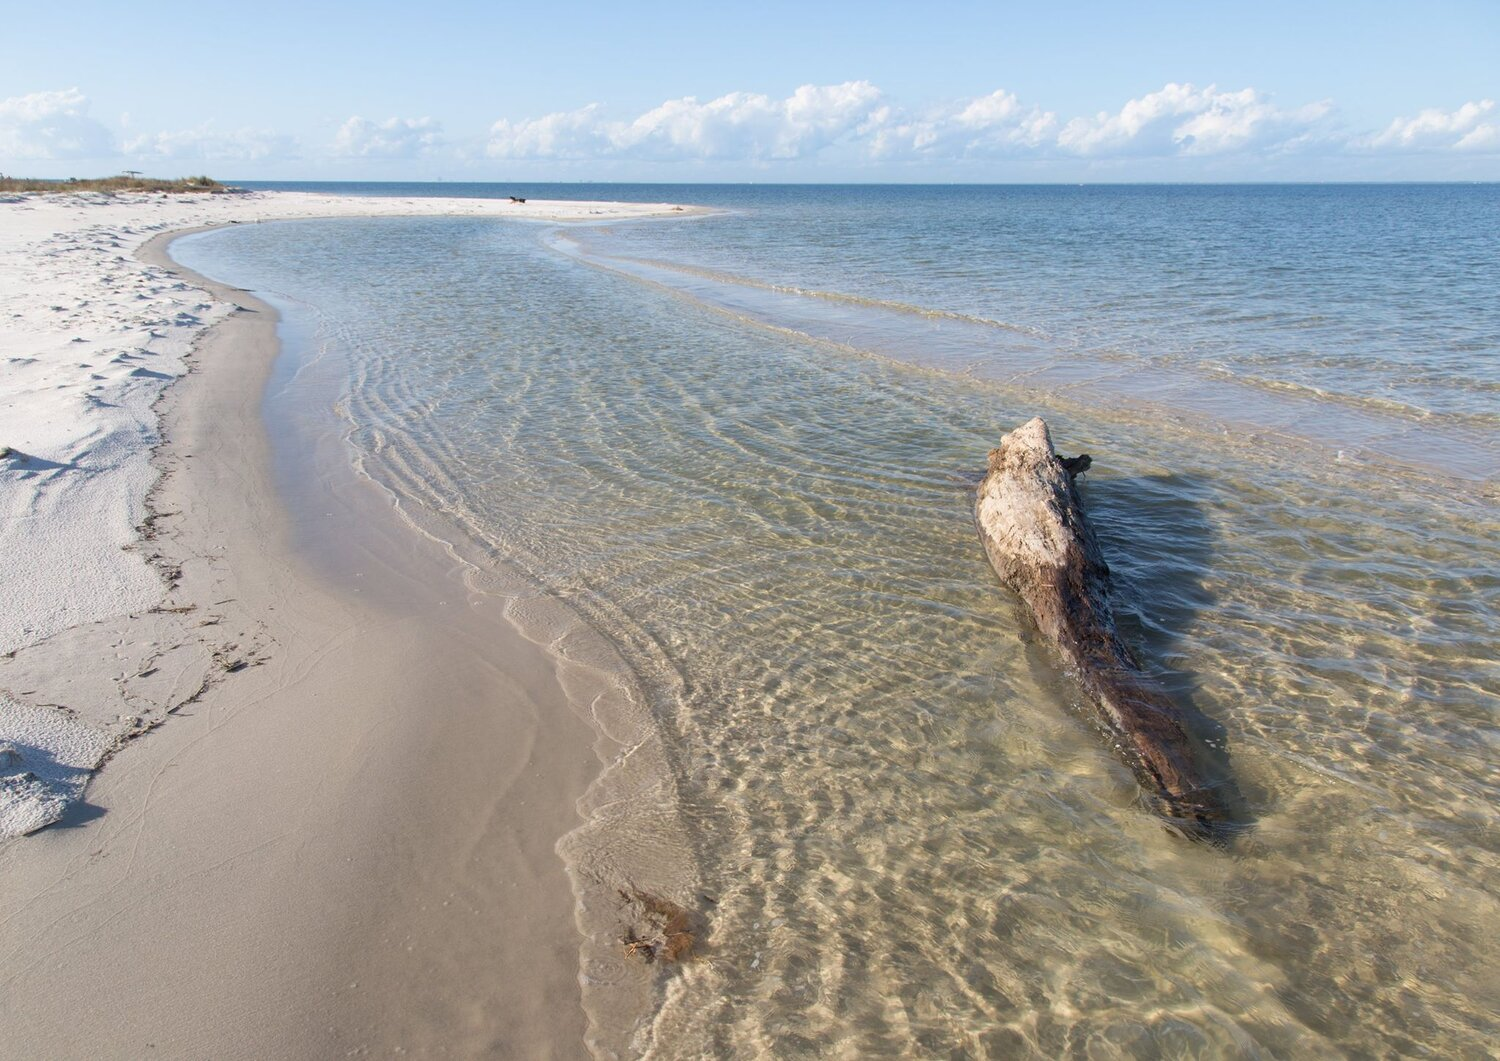 Click the image to visit the National Seashore website!